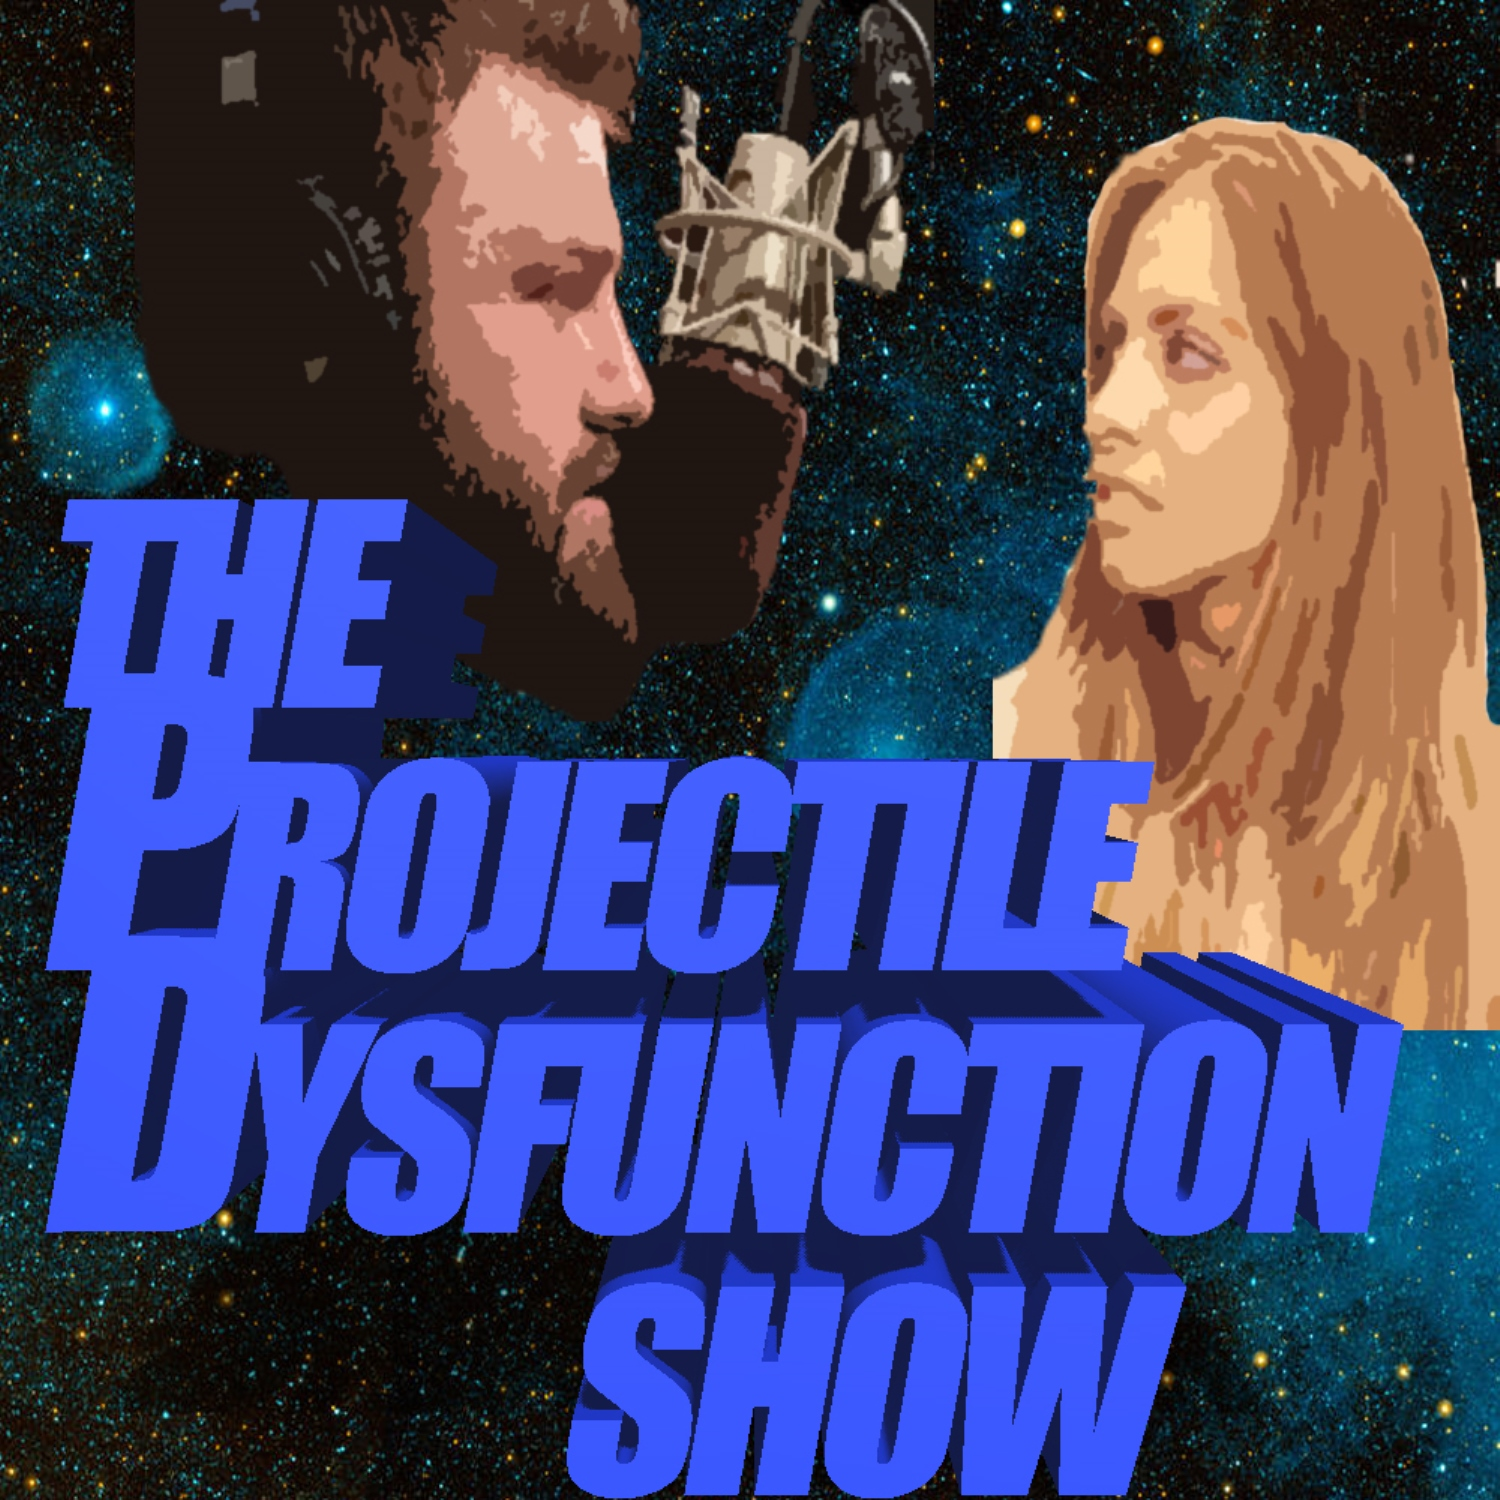 The Projectile Dysfunction Show